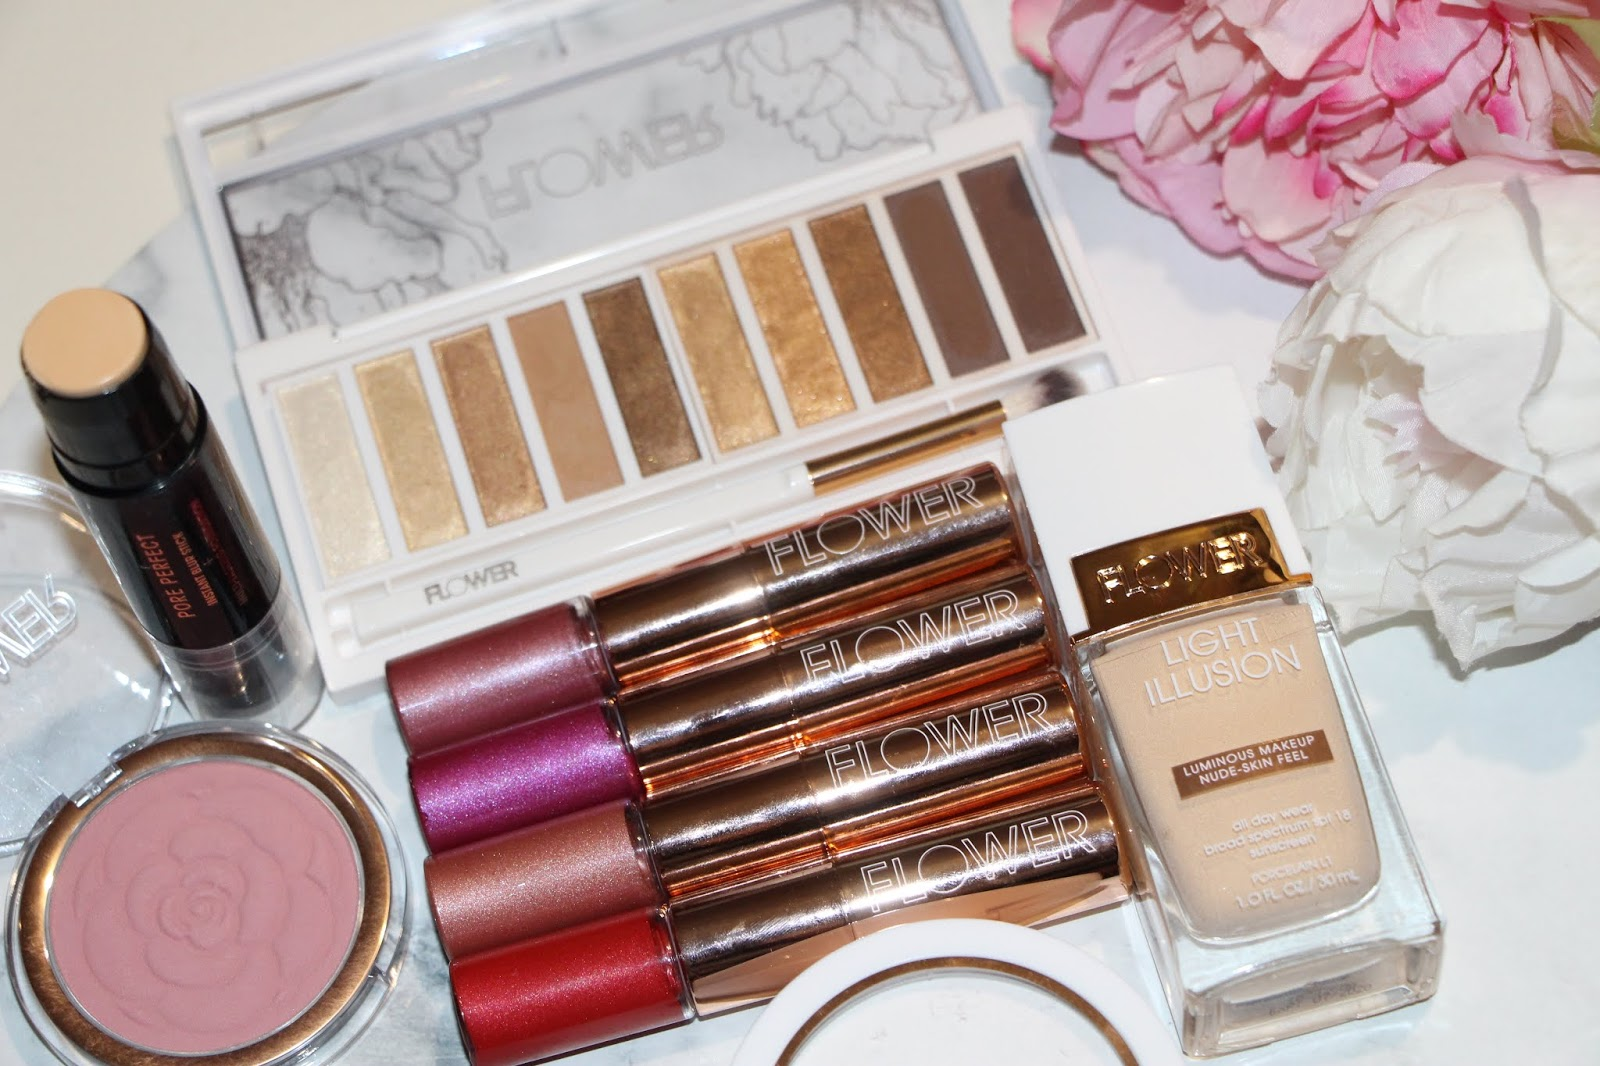 If you have never heard of Flower Makeup before here is my review on the stunning makeup brand by Drew Barrymore she has created this range to empower women ...